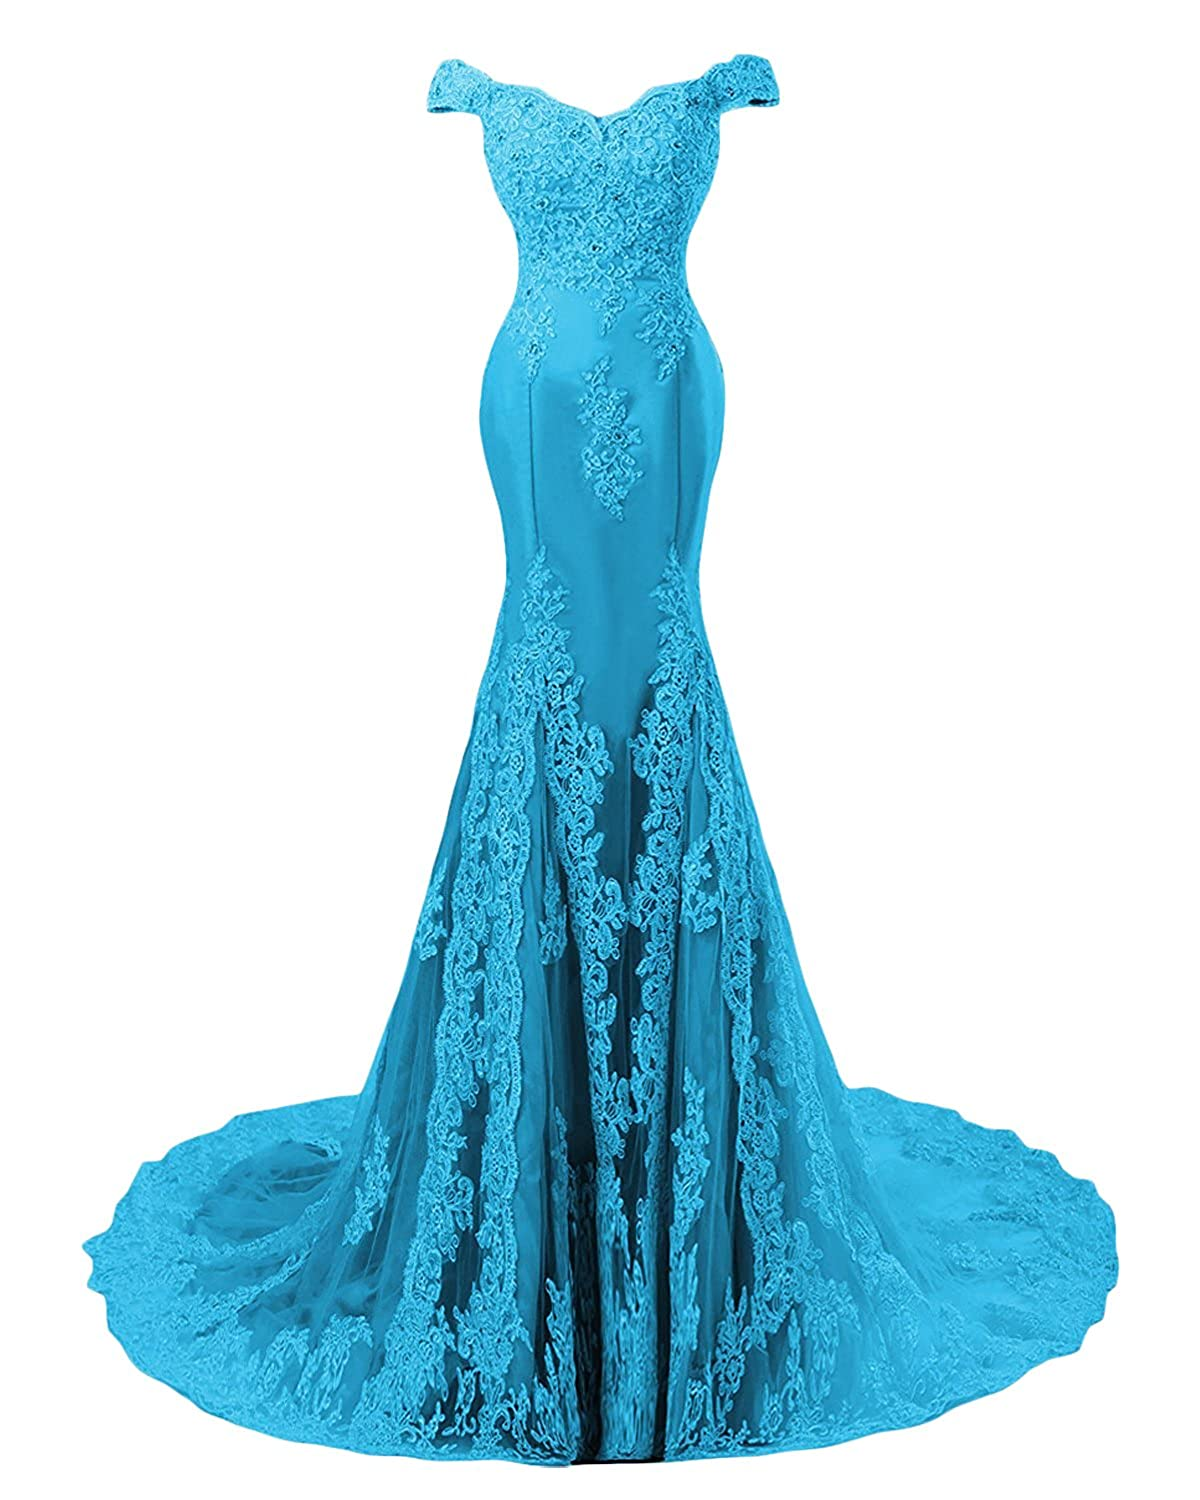 bluee M Bridal Women's Crystals Lace Appliques OfftheShoulder Mermaid Evening Dress